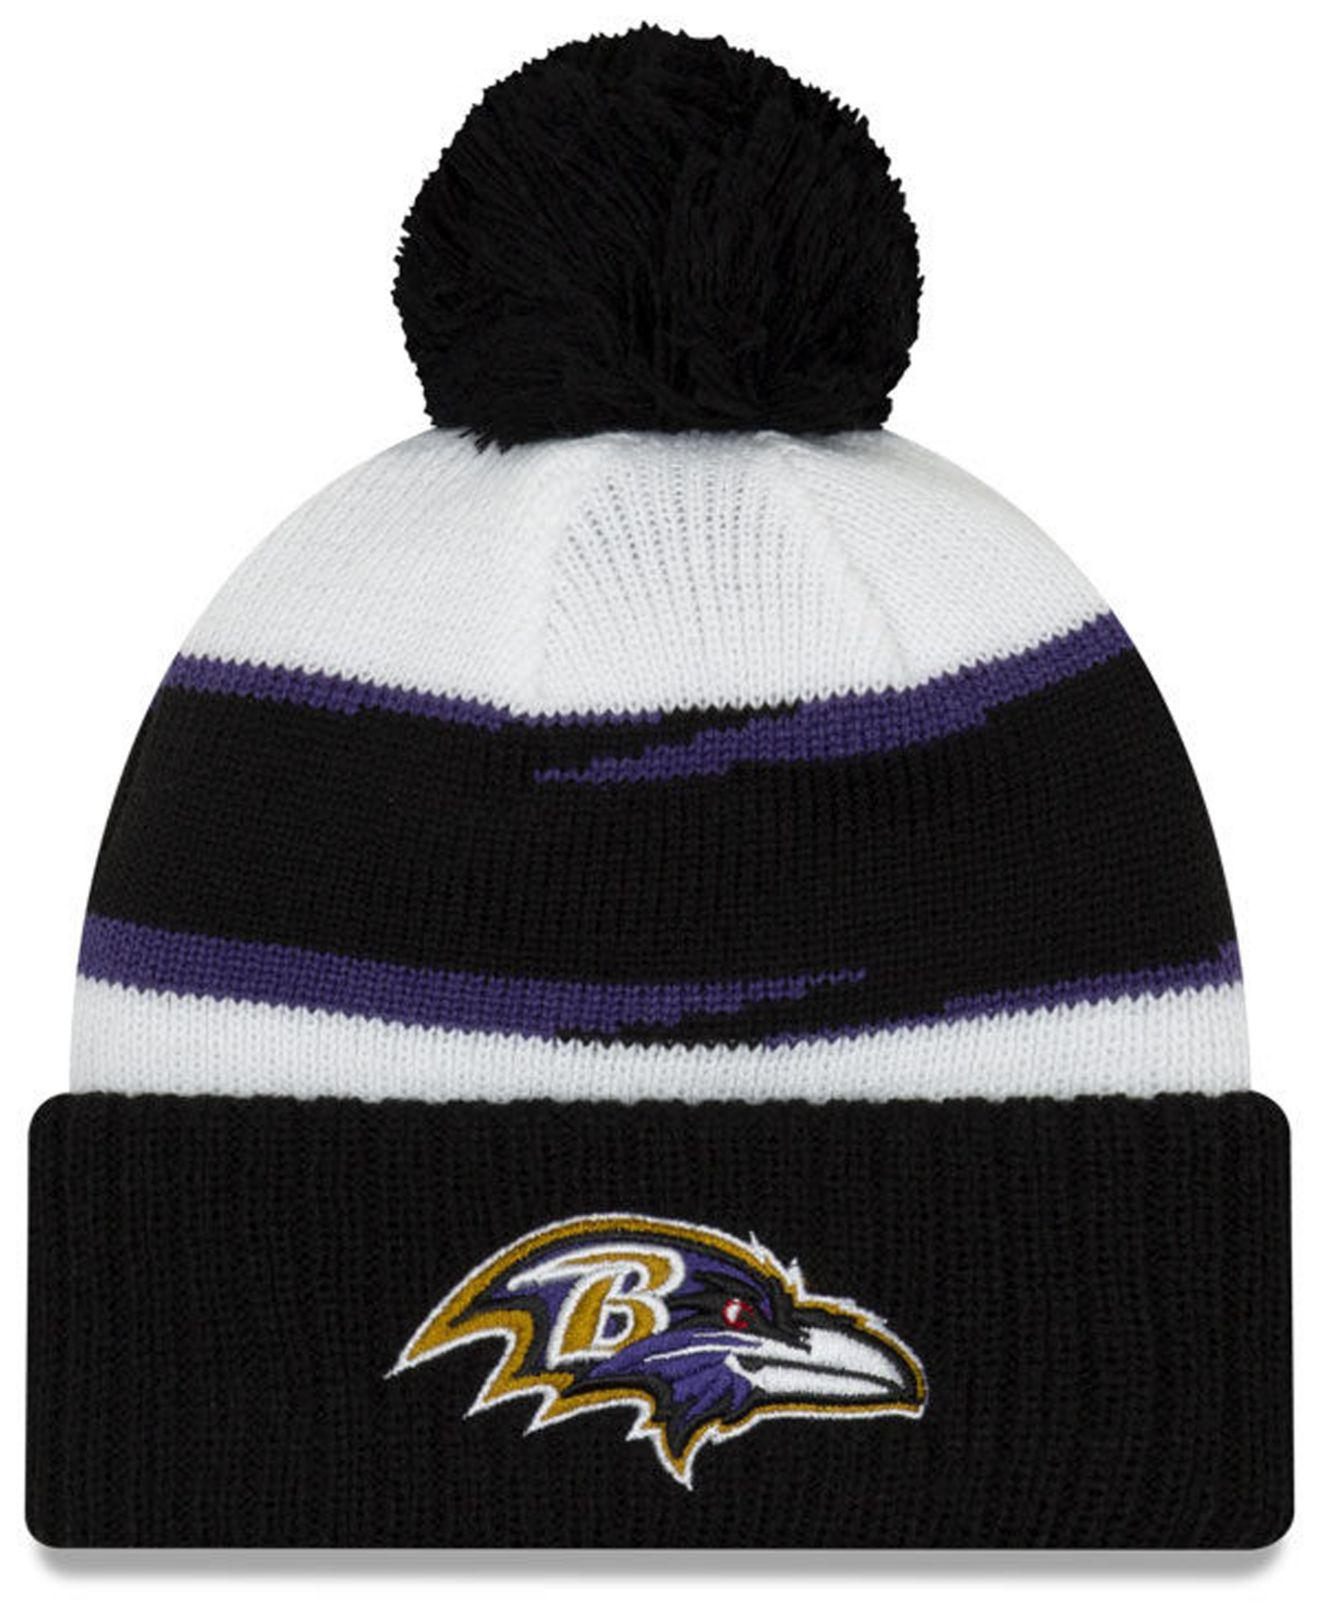 e6bf38b6b200e KTZ - Black Baltimore Ravens Thanksgiving Pom Knit Hat - Lyst. View  fullscreen